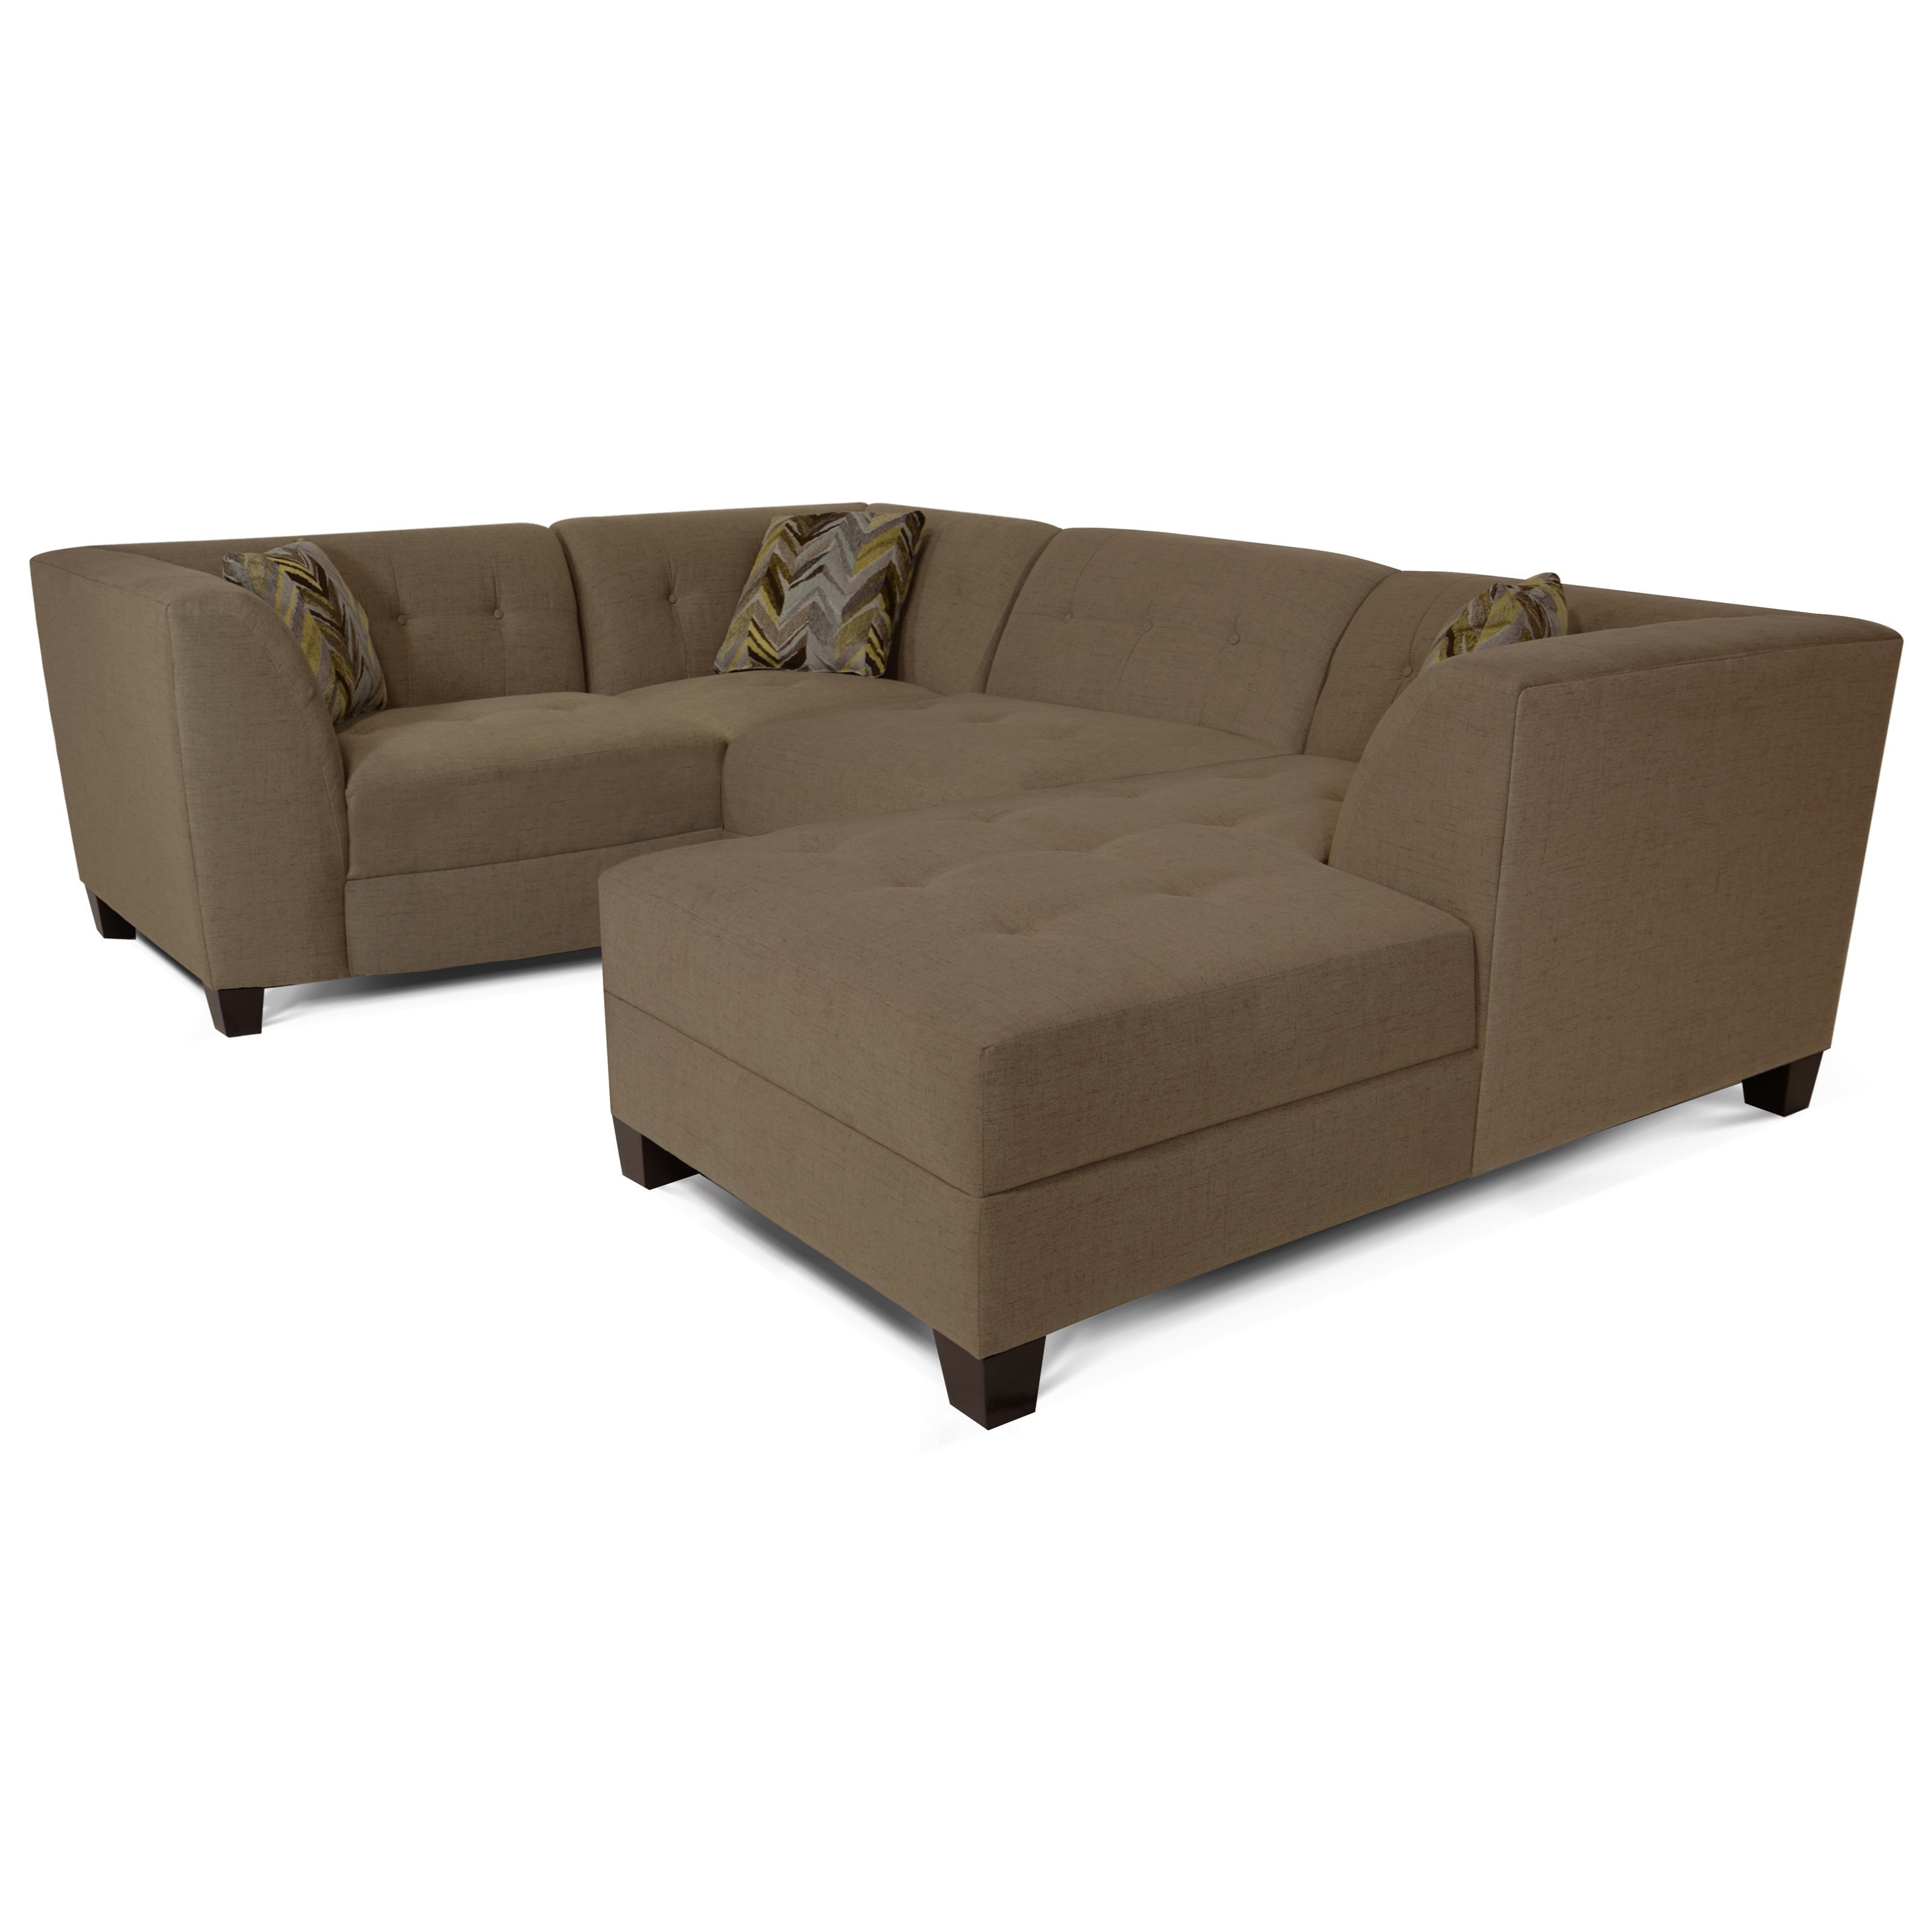 Miller Sectional Sofa by England at EFO Furniture Outlet